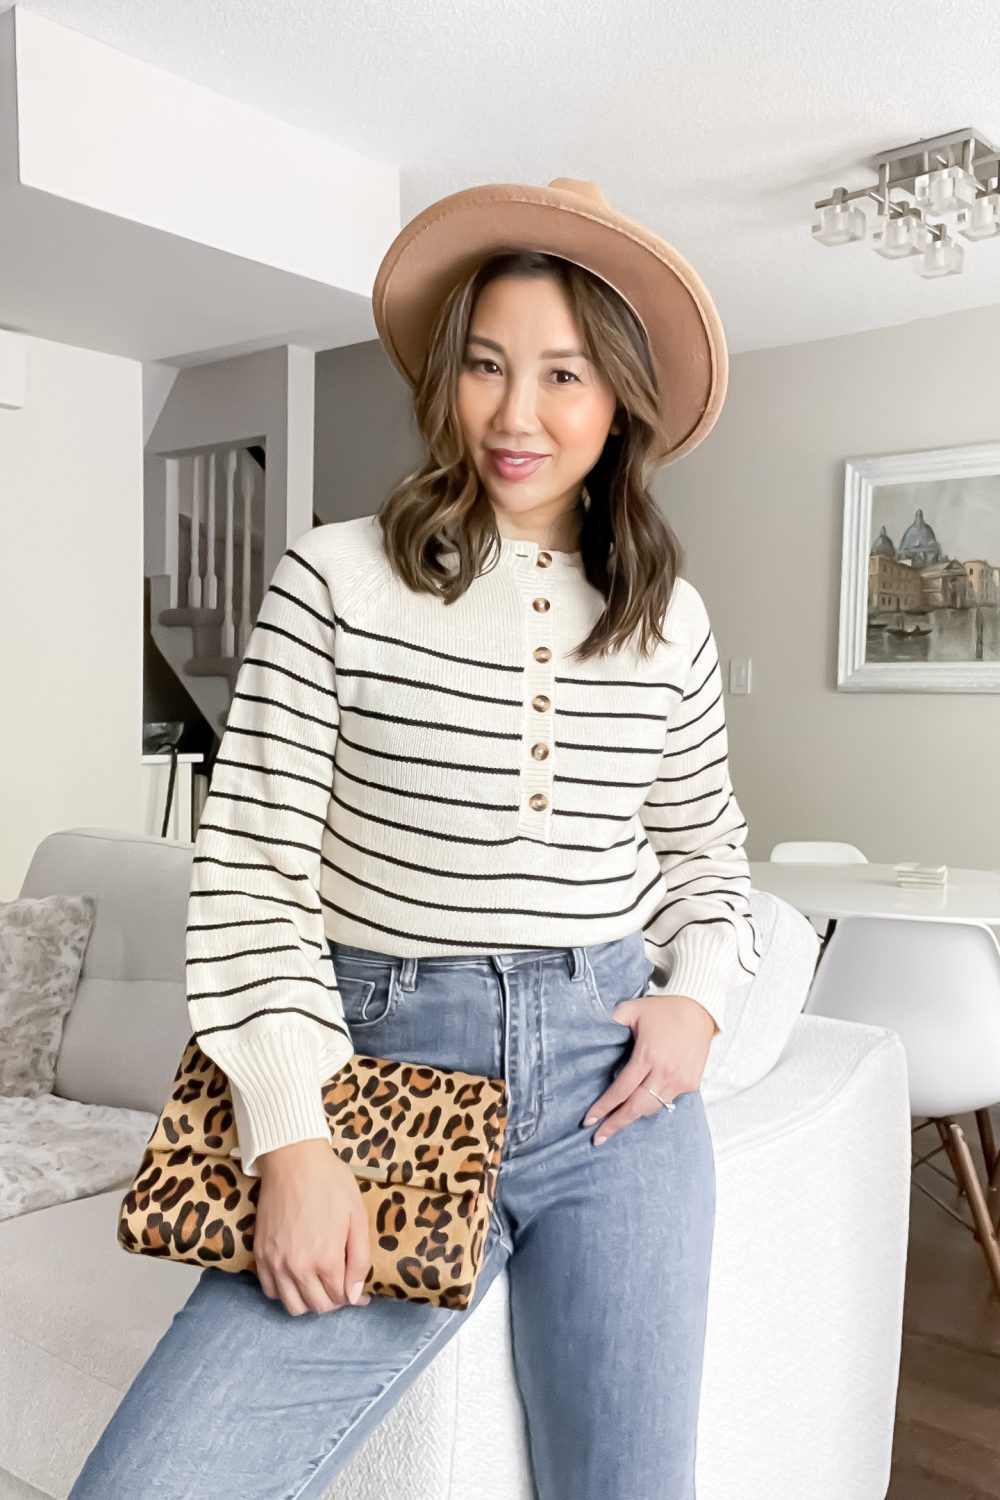 Fall outfit with striped sweater, mom jeans, wool hat and leopard bag. Styled by Canadian Lifestyle Blogger Eileen Lazazzera of yesmissy.com